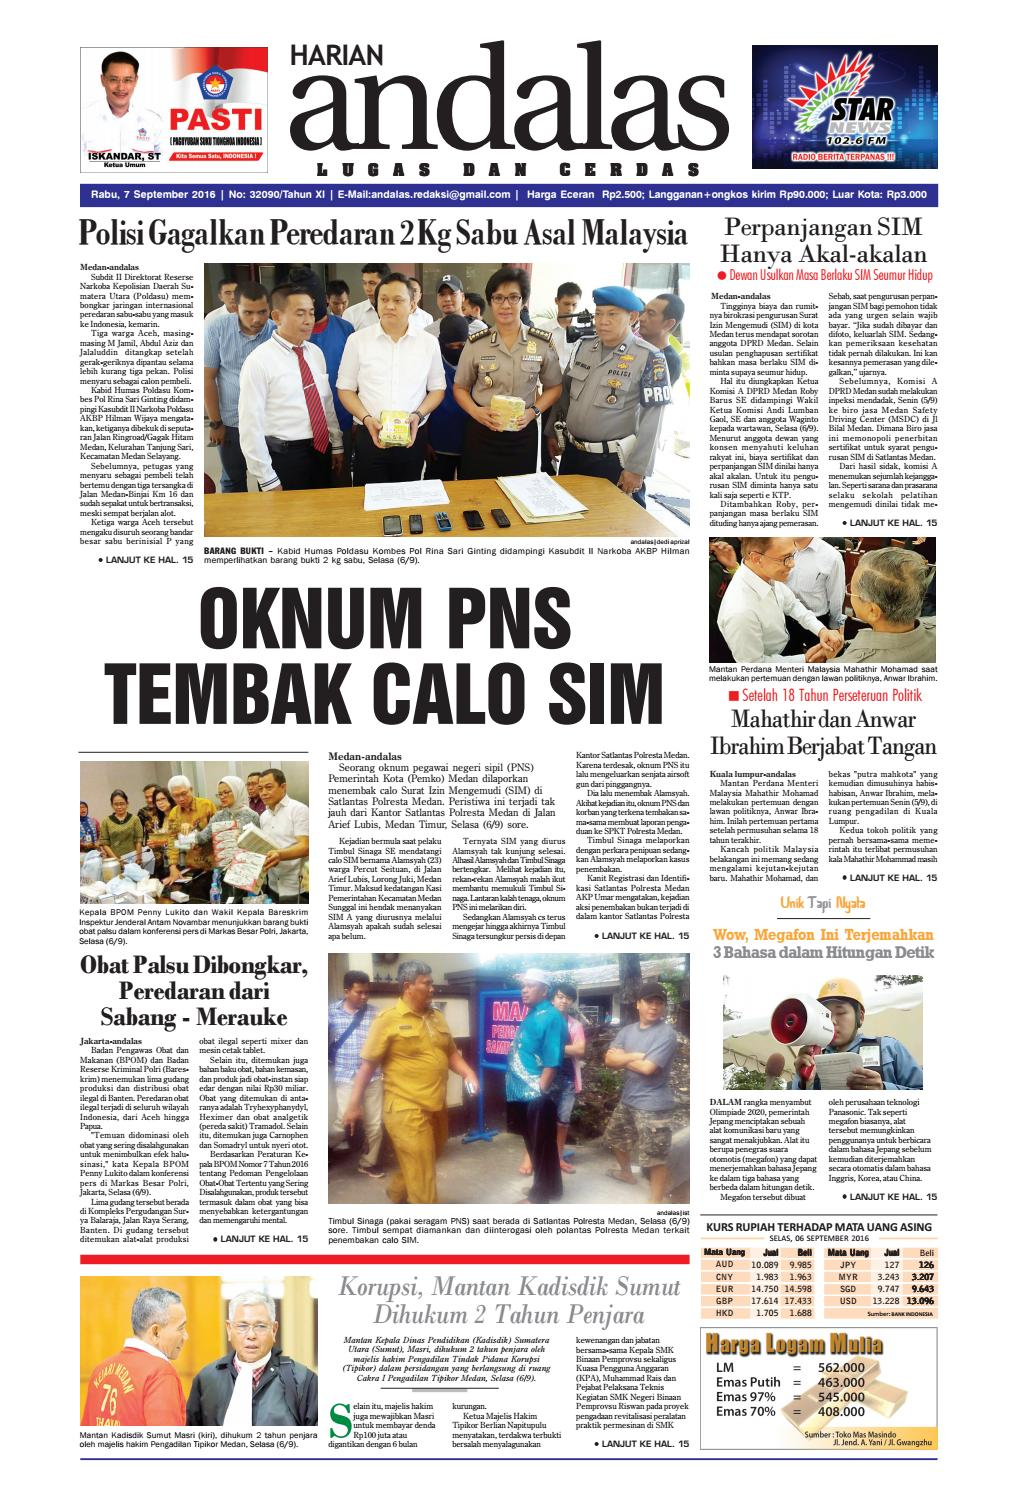 Epaper Andalas Edisi Rabu 7 September 2016 By Media Andalas Issuu